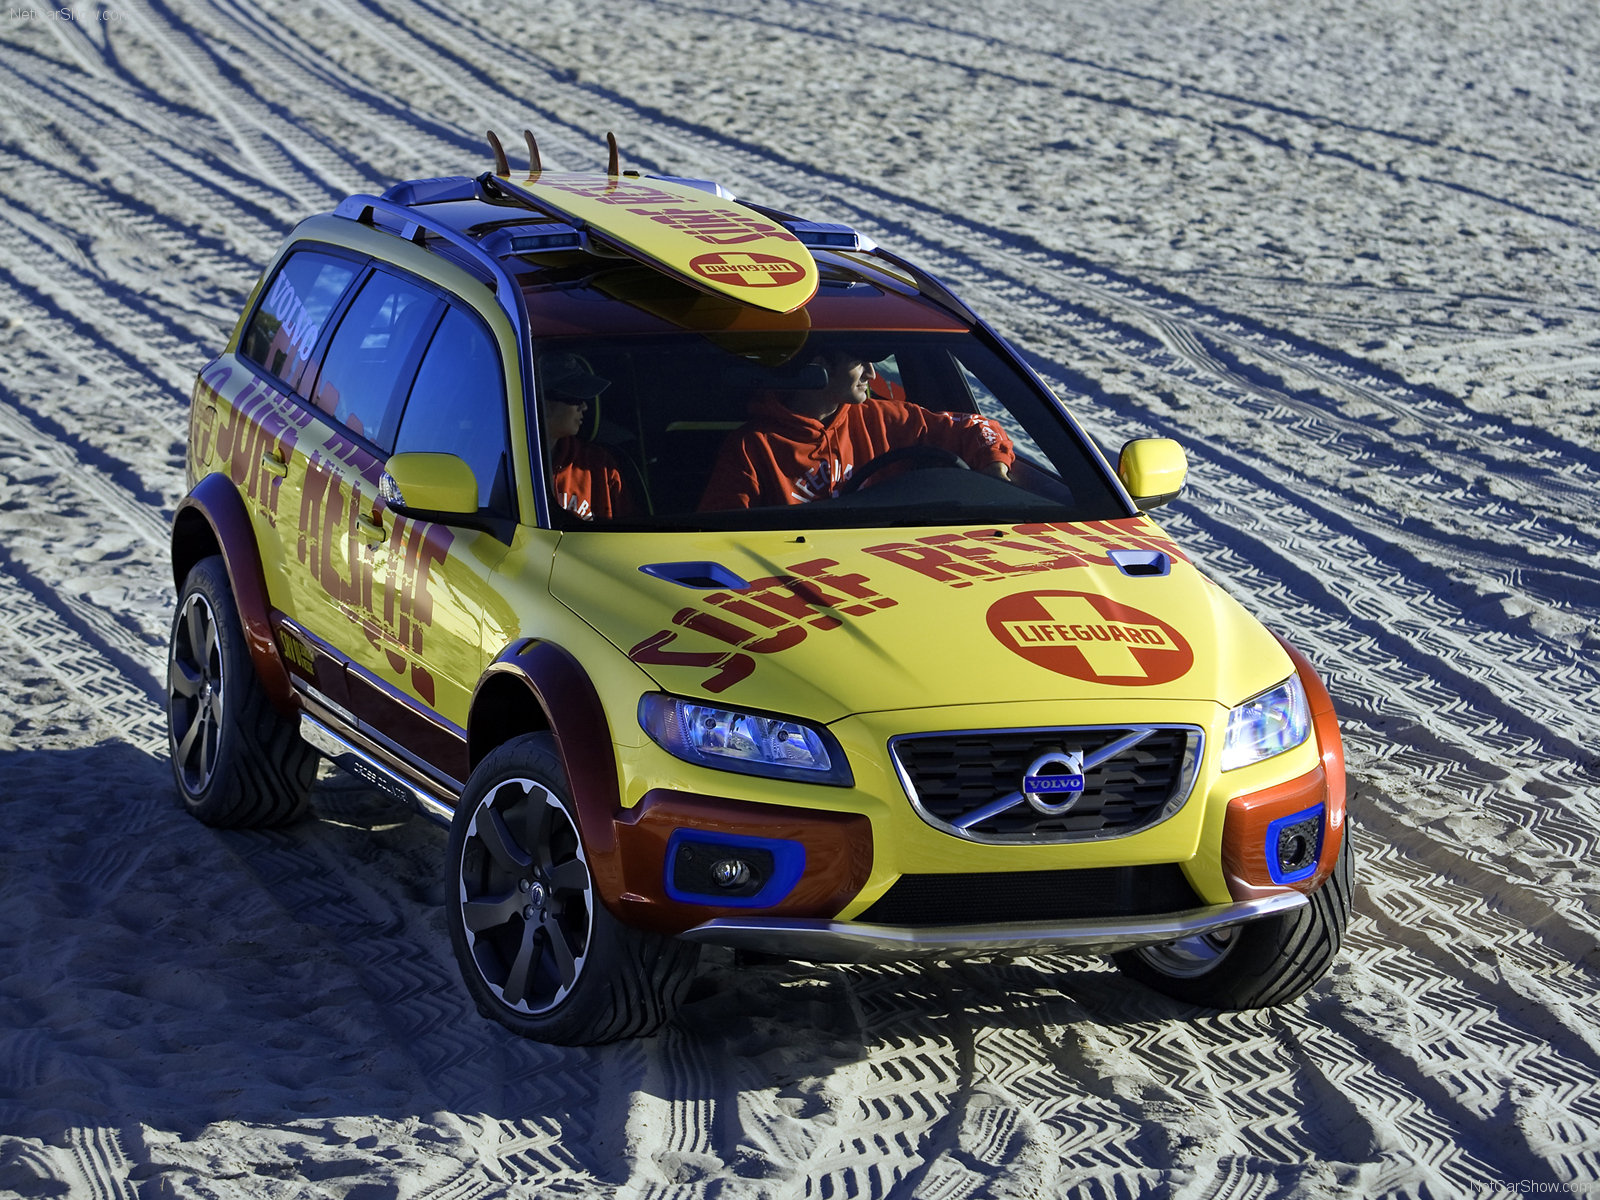 Volvo XC70 Surf Rescue photo 48848